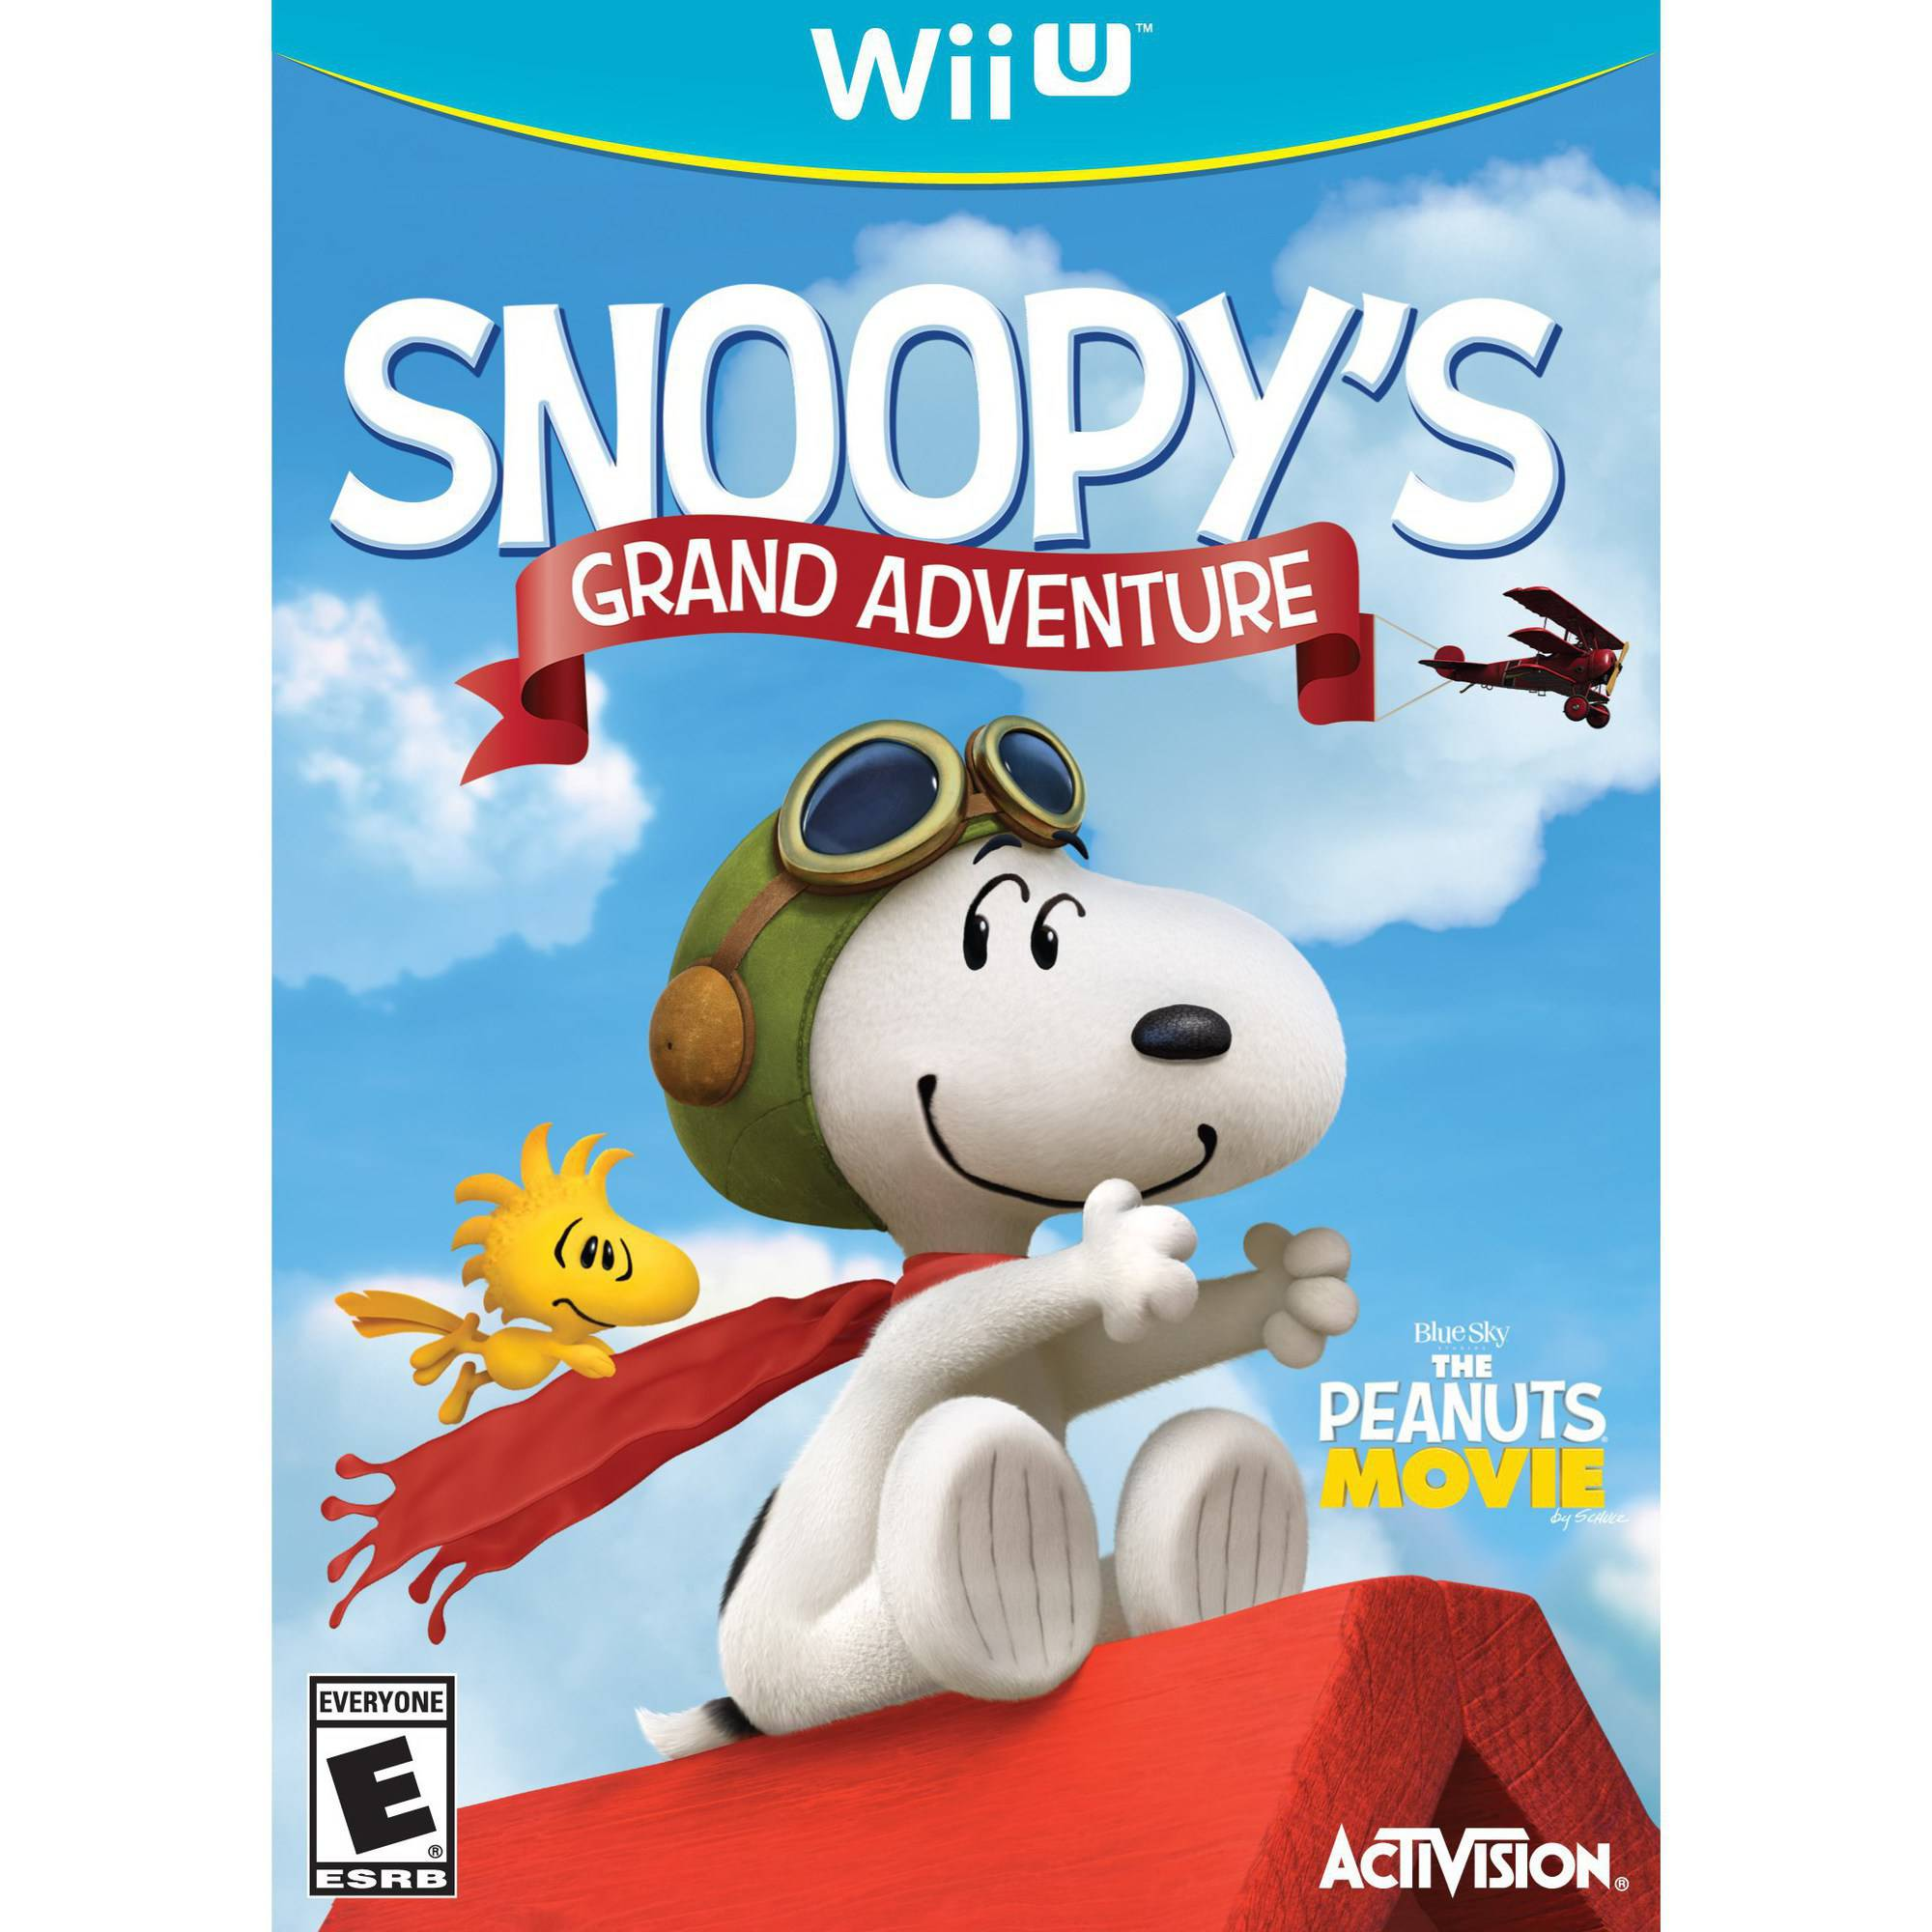 The Peanuts Movie: Snoopy's Grand Adventure (Wii U)